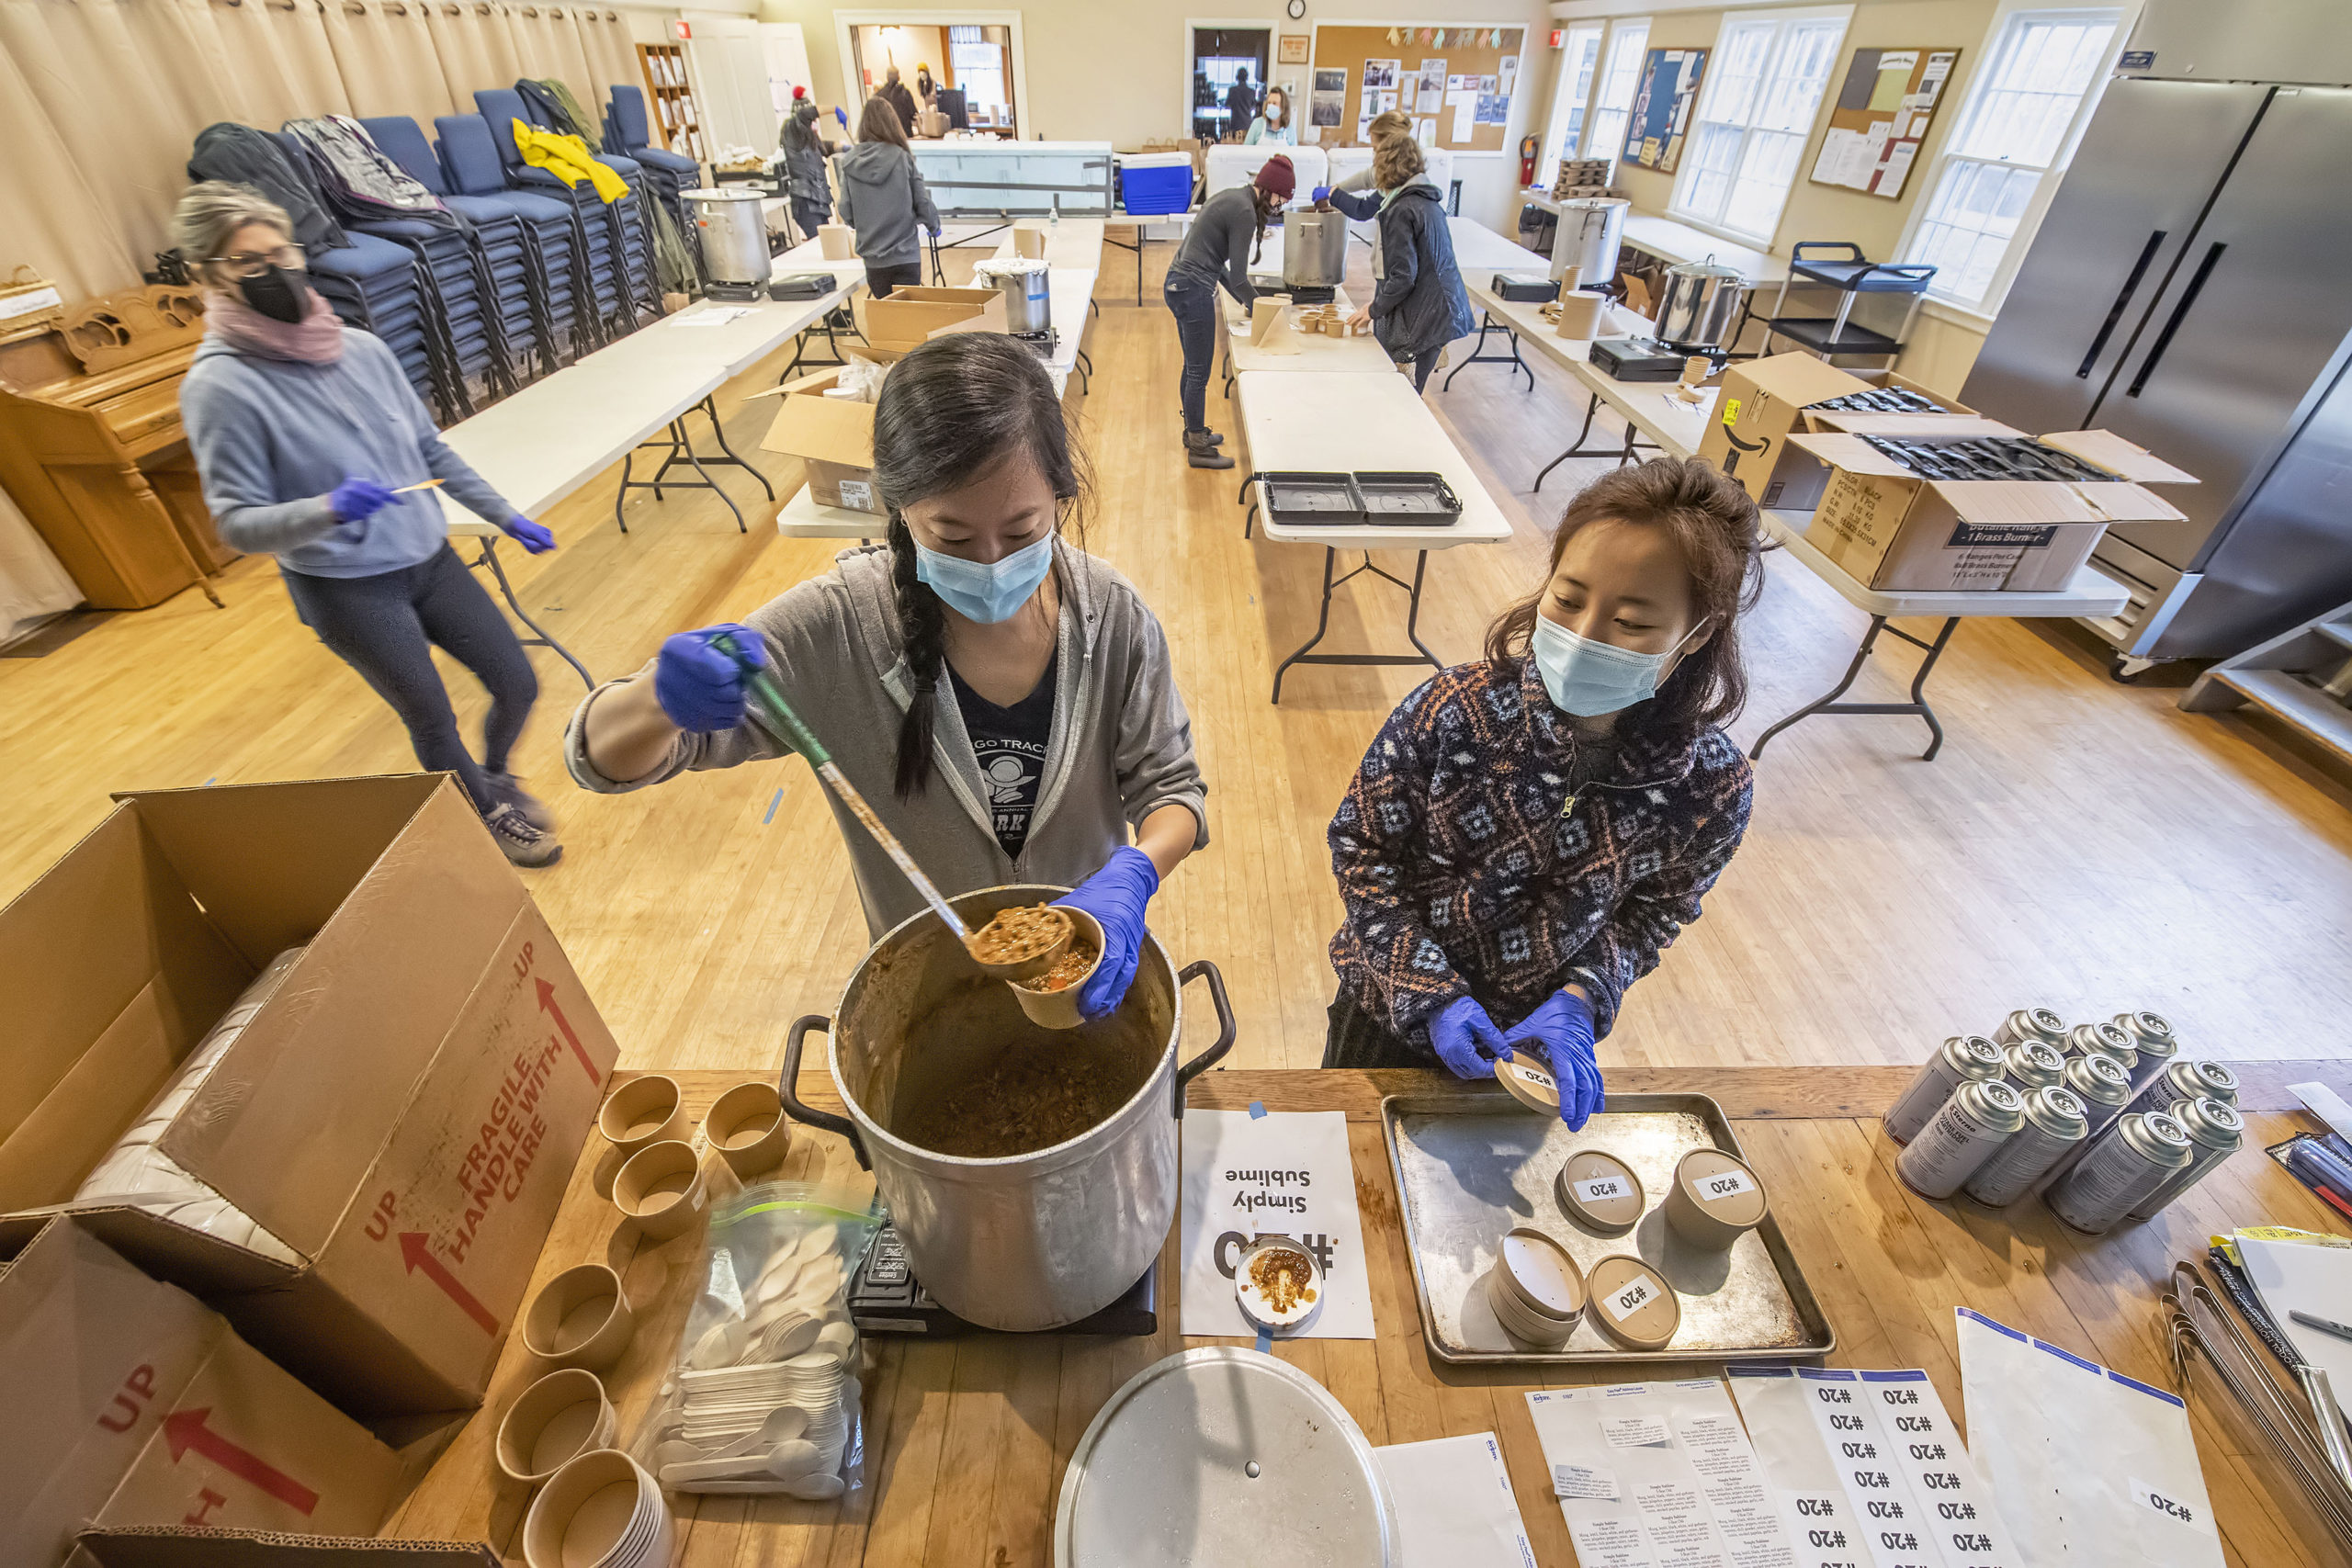 Elise Hsu and Jenny Park fill containers of chili made by Simply Sublime during the annual Chili Cook Off that was held at the Springs Presbyterian Church on Saturday.     MICHAEL HELLER